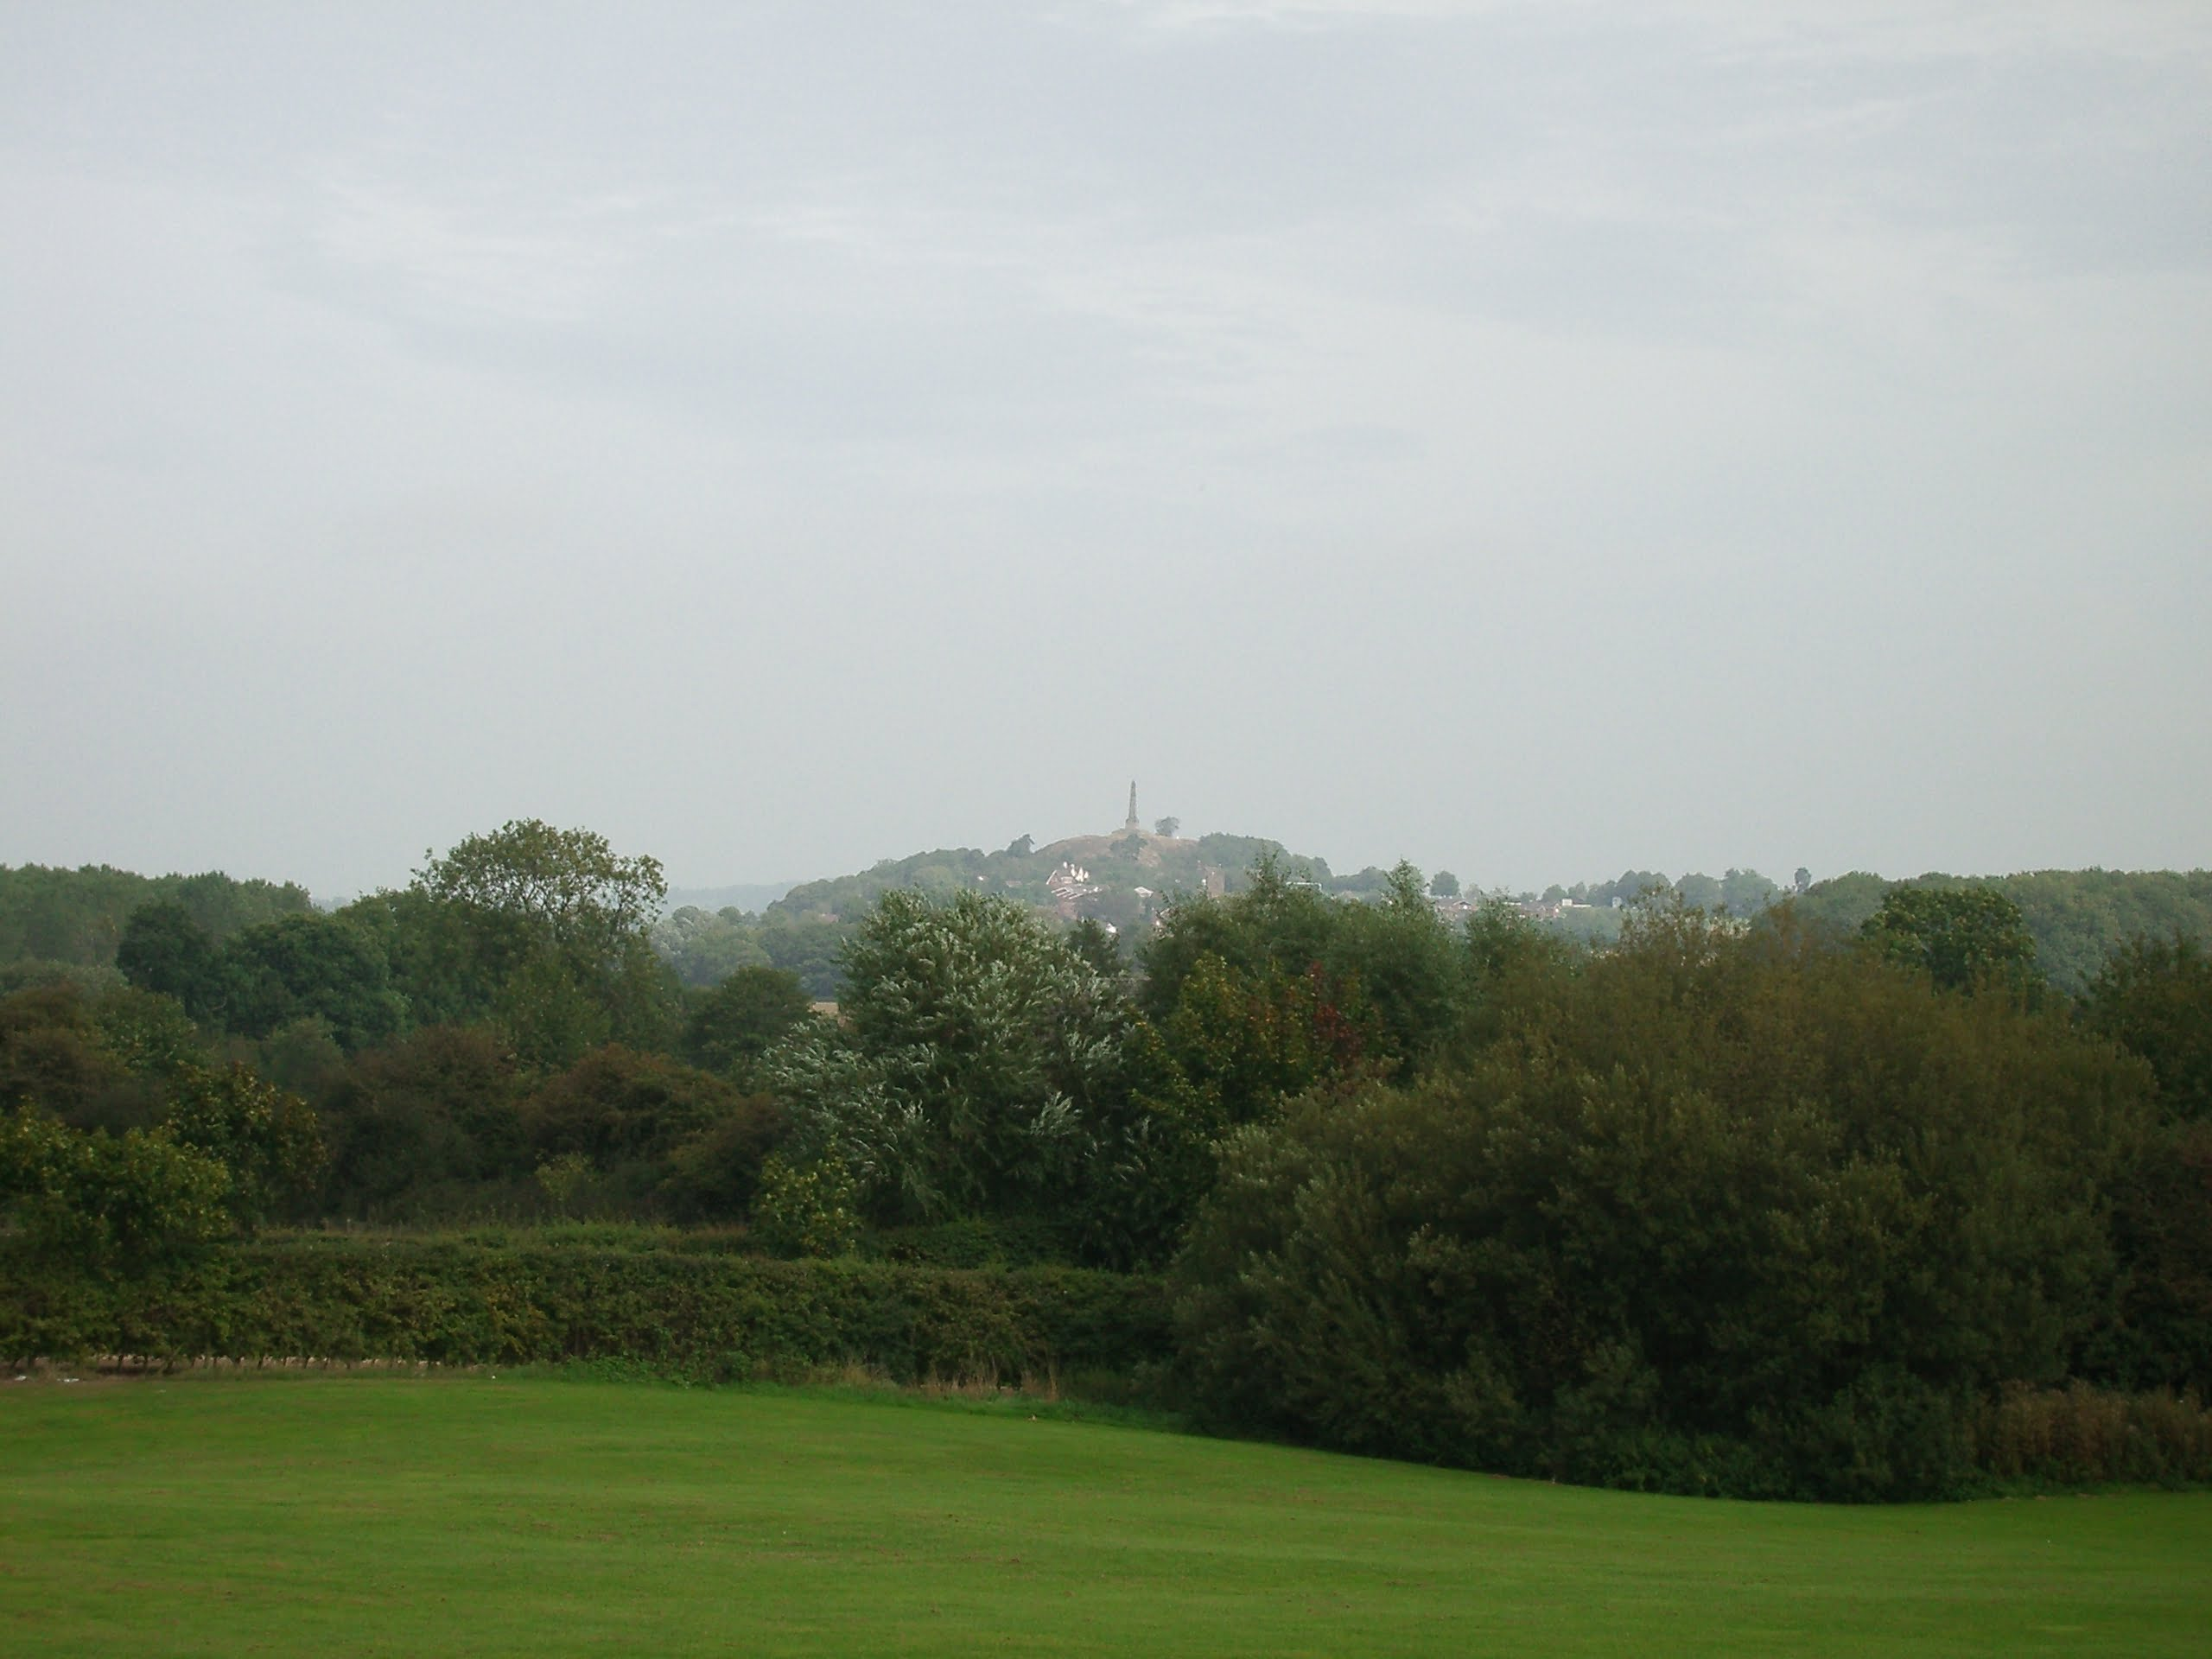 looking-towards-lilleshall-from-the-edge-of-the-former-coalfield-at-muxton